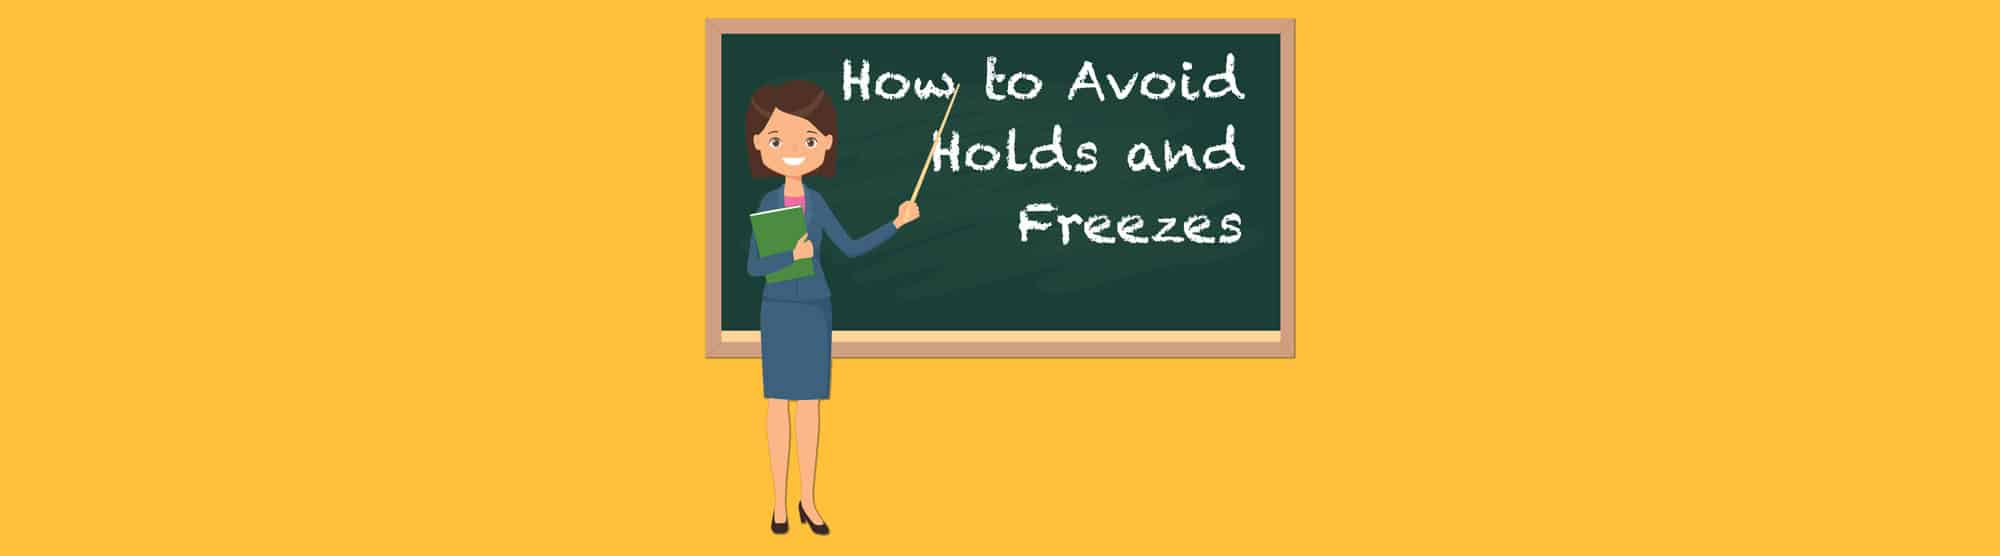 Merchant Account Holds and freezes